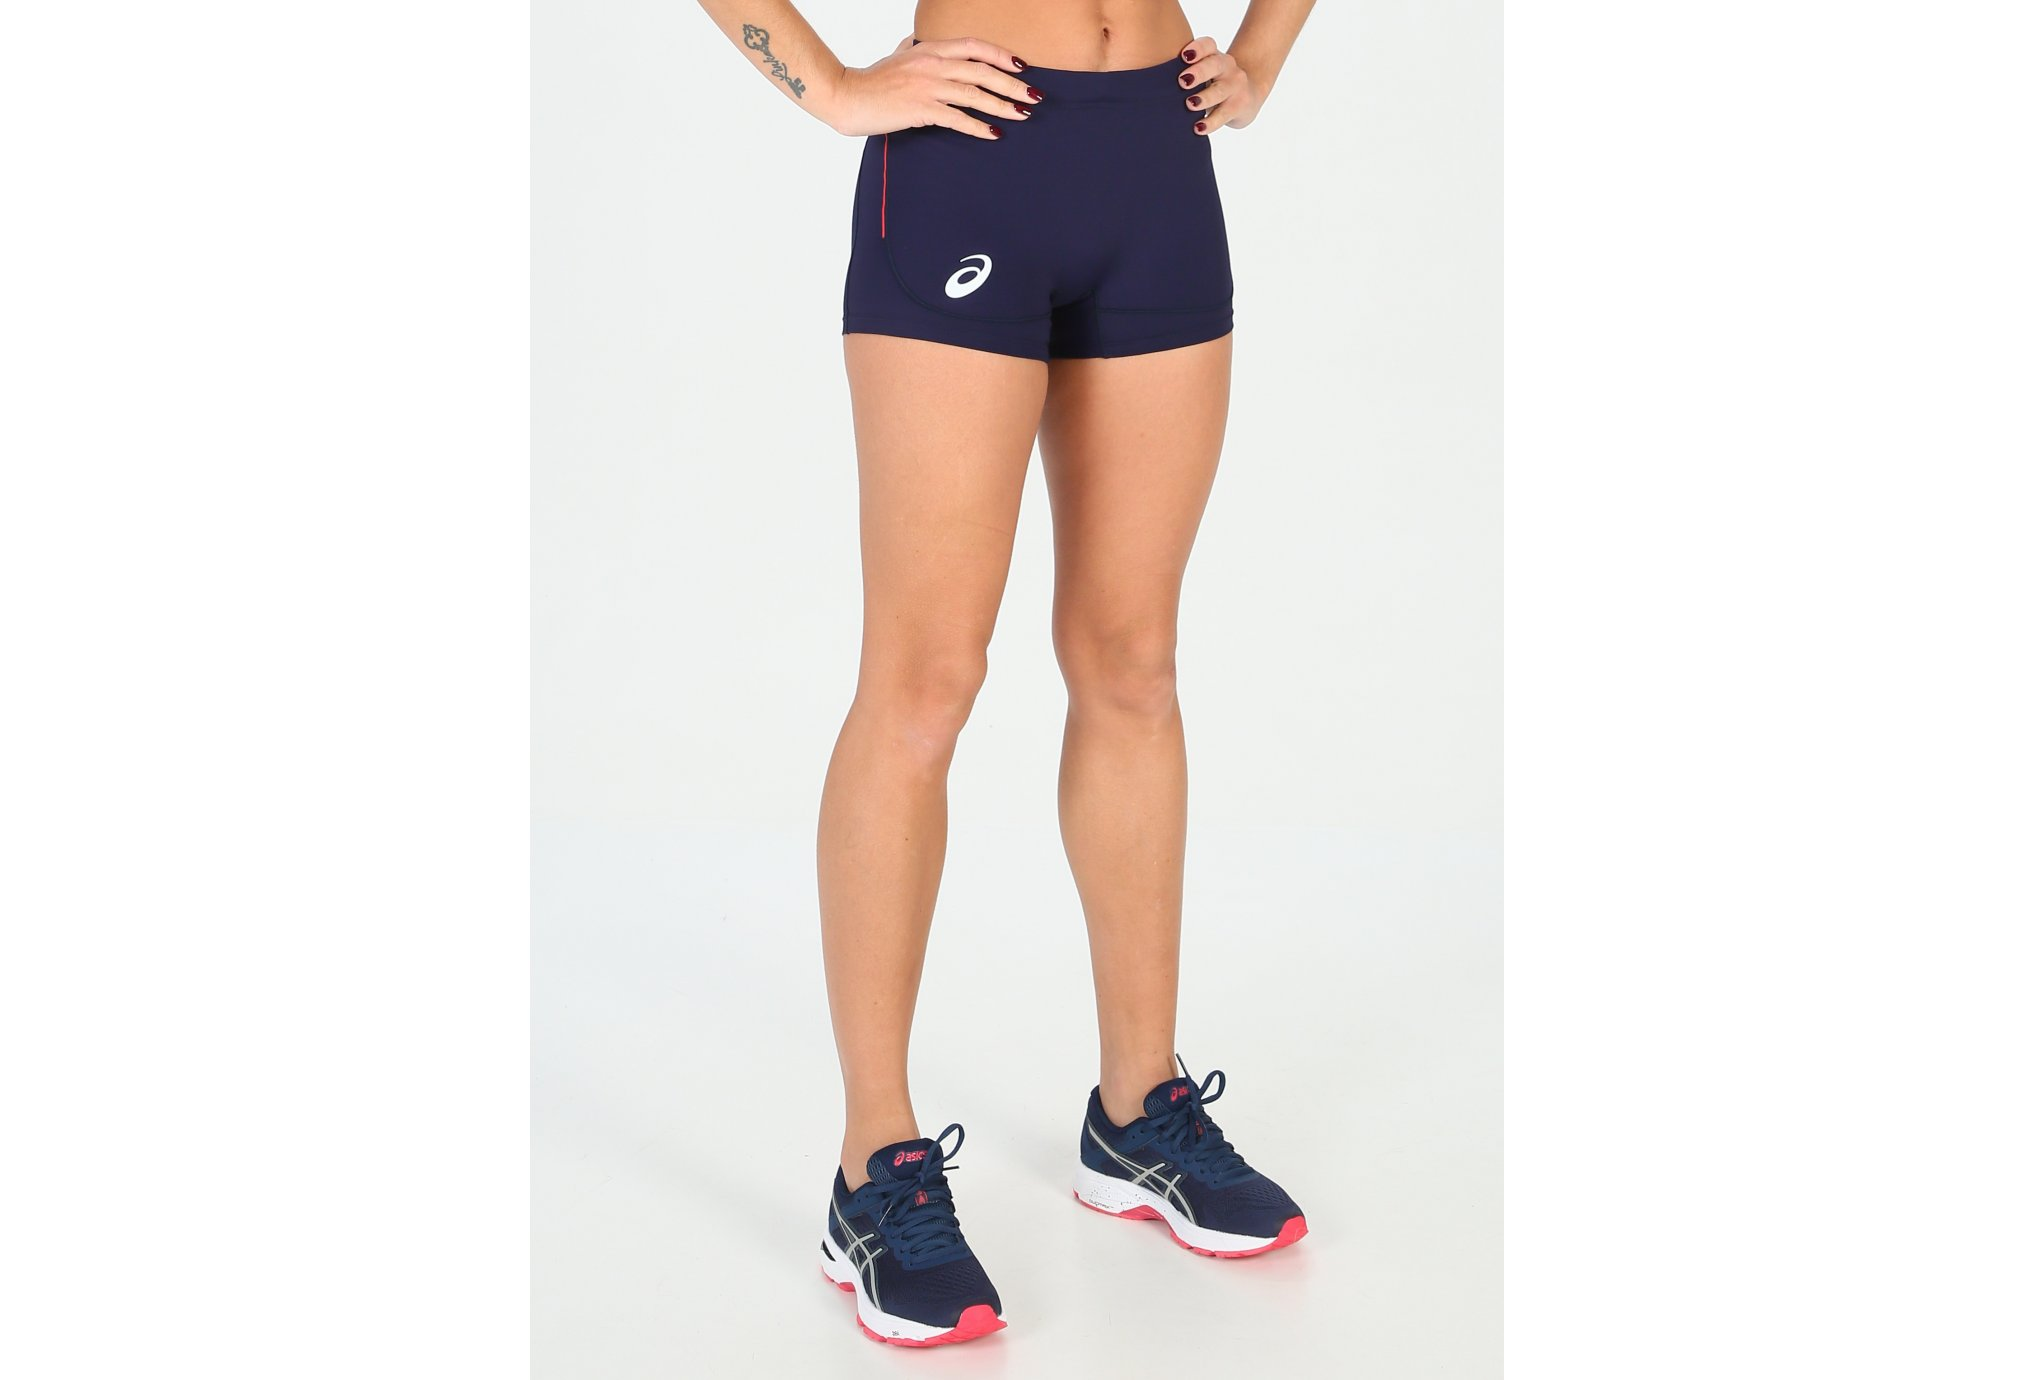 Asics Hot Pants Équipe de France W vêtement running femme